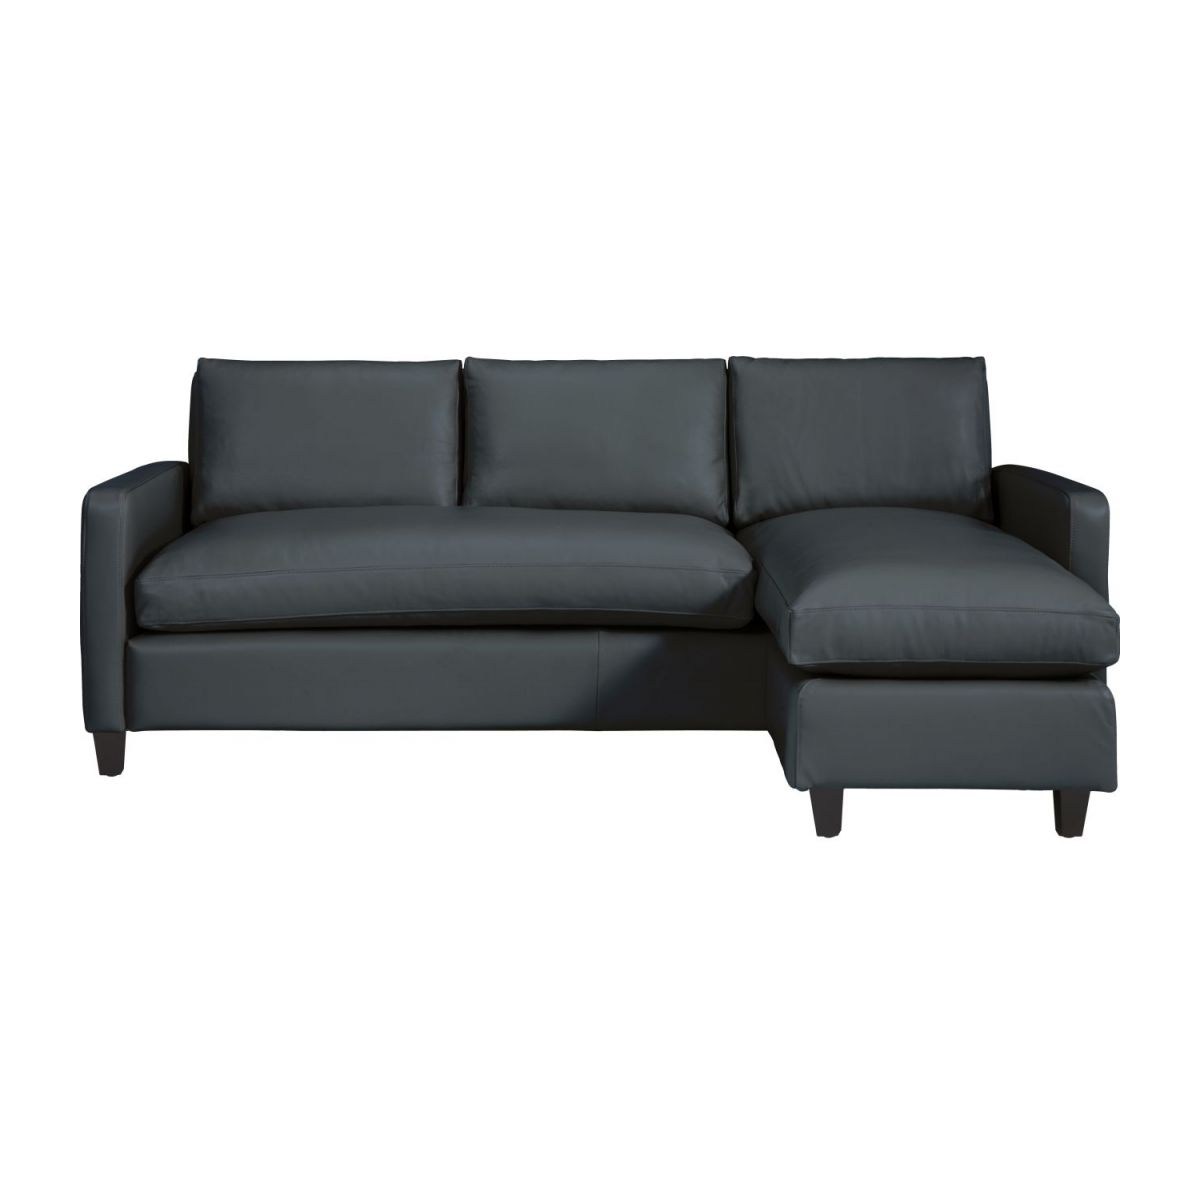 Leather corner sofa n°2